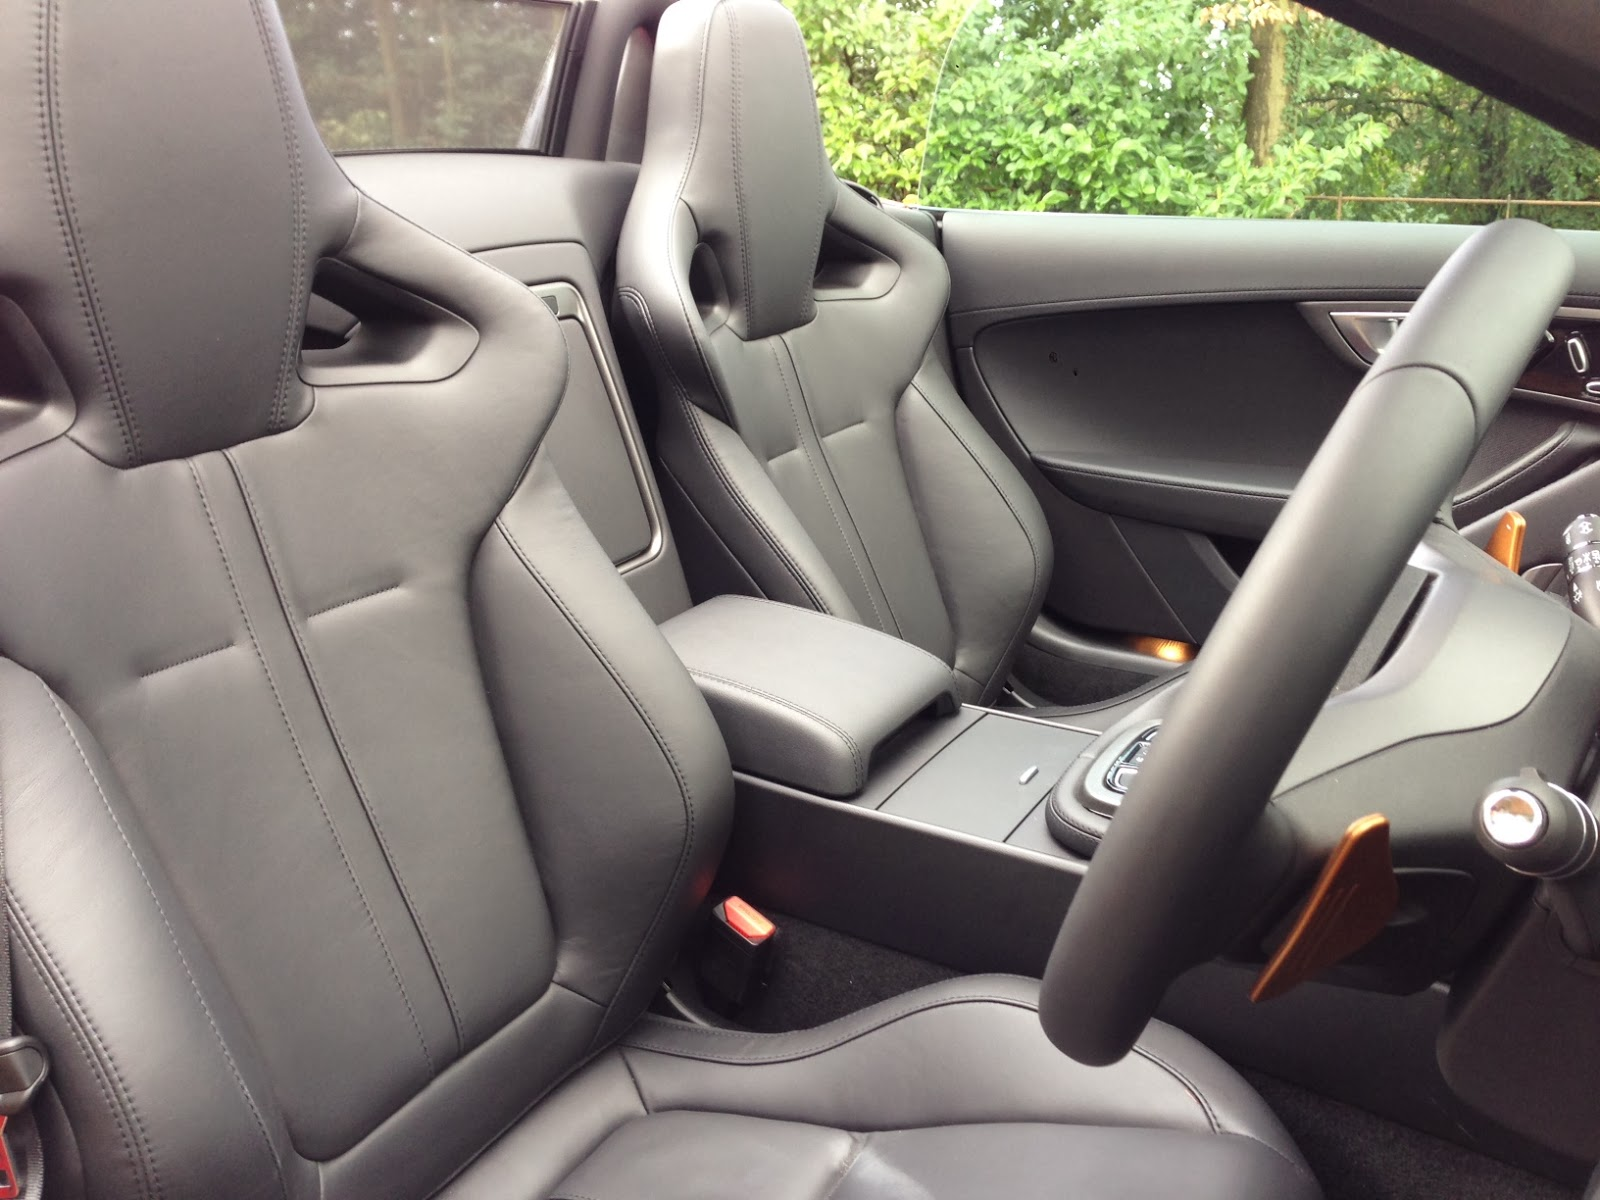 2014 Jaguar F-Type V8 S Convertible seats